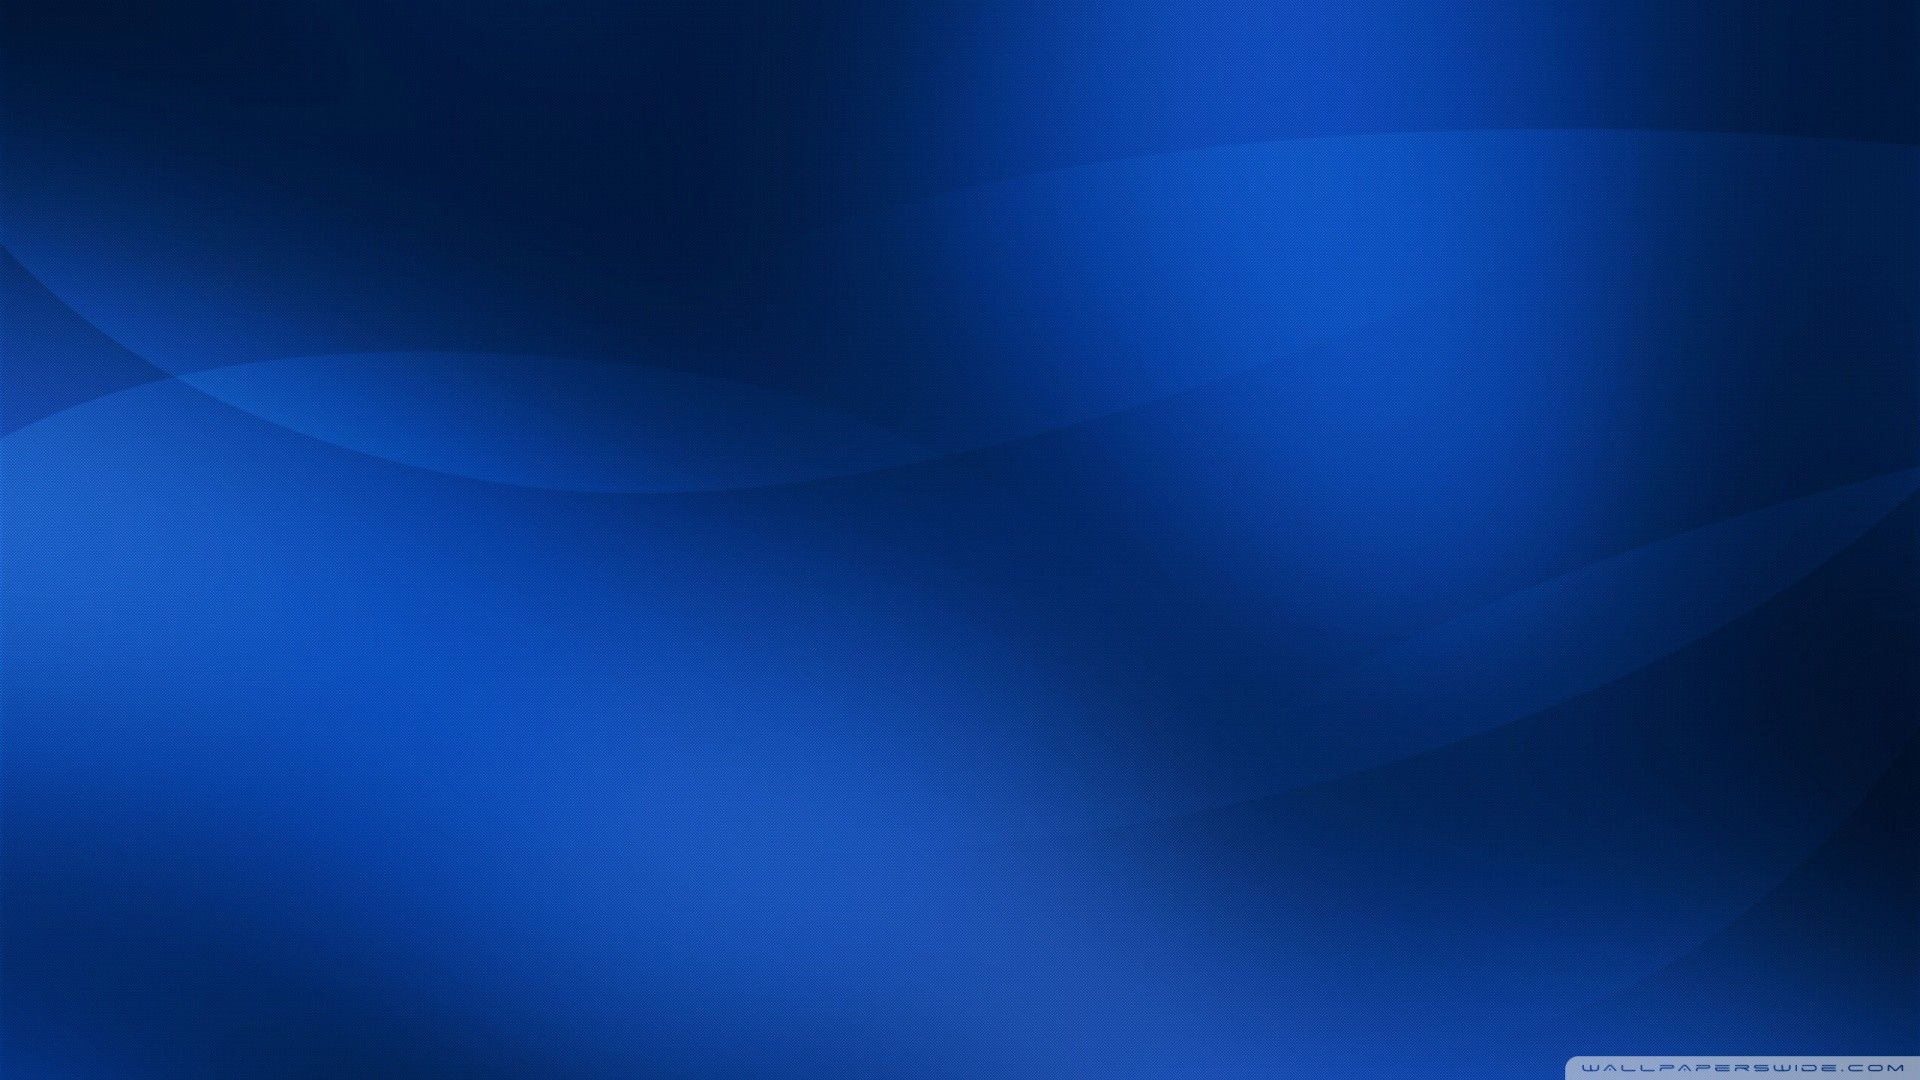 82 1920x1080 Blue Wallpapers On Wallpaperplay Creative Graphics Blue Wallpapers Blue Flower Wallpaper